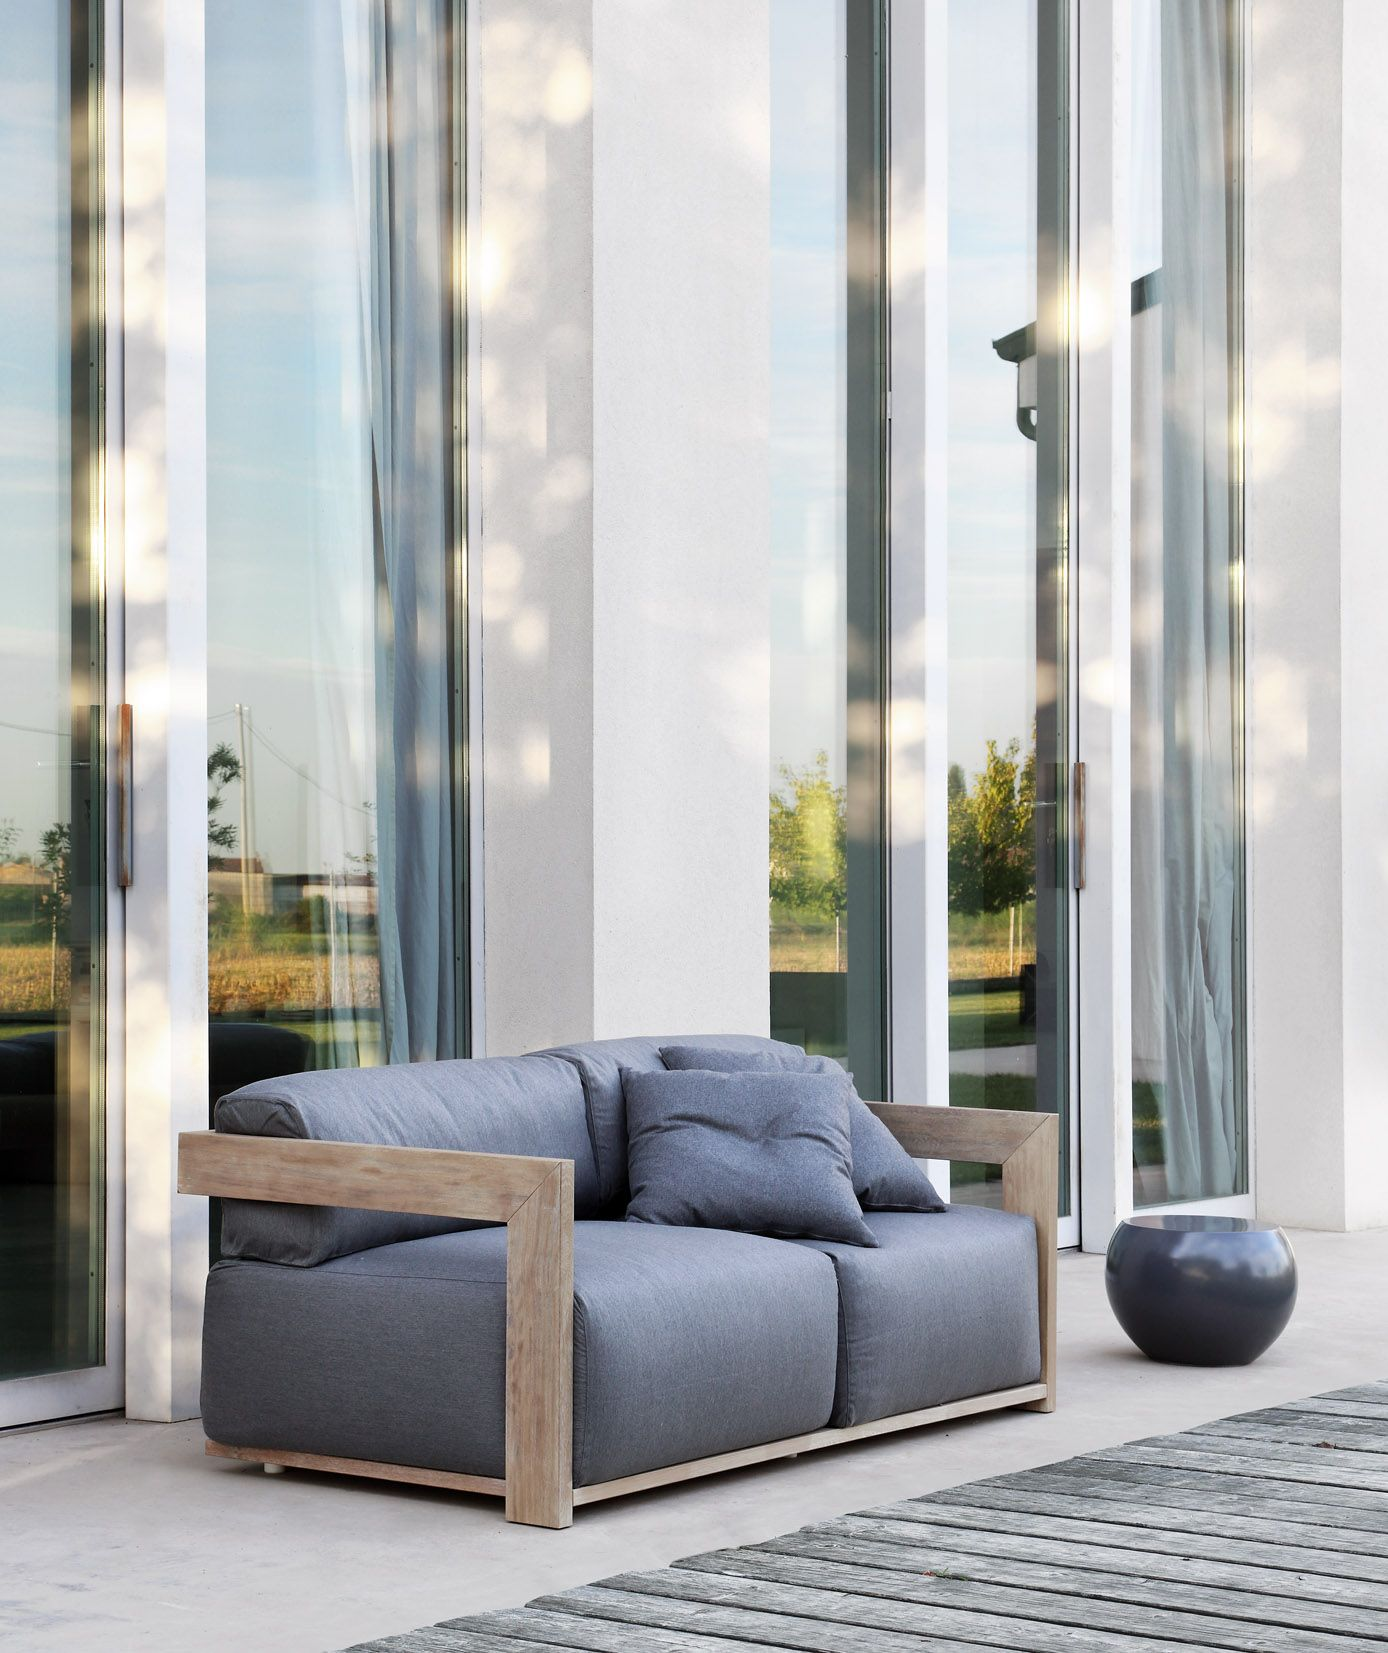 MERIDIANI I Cloud sofa I Bongo low table Furniture